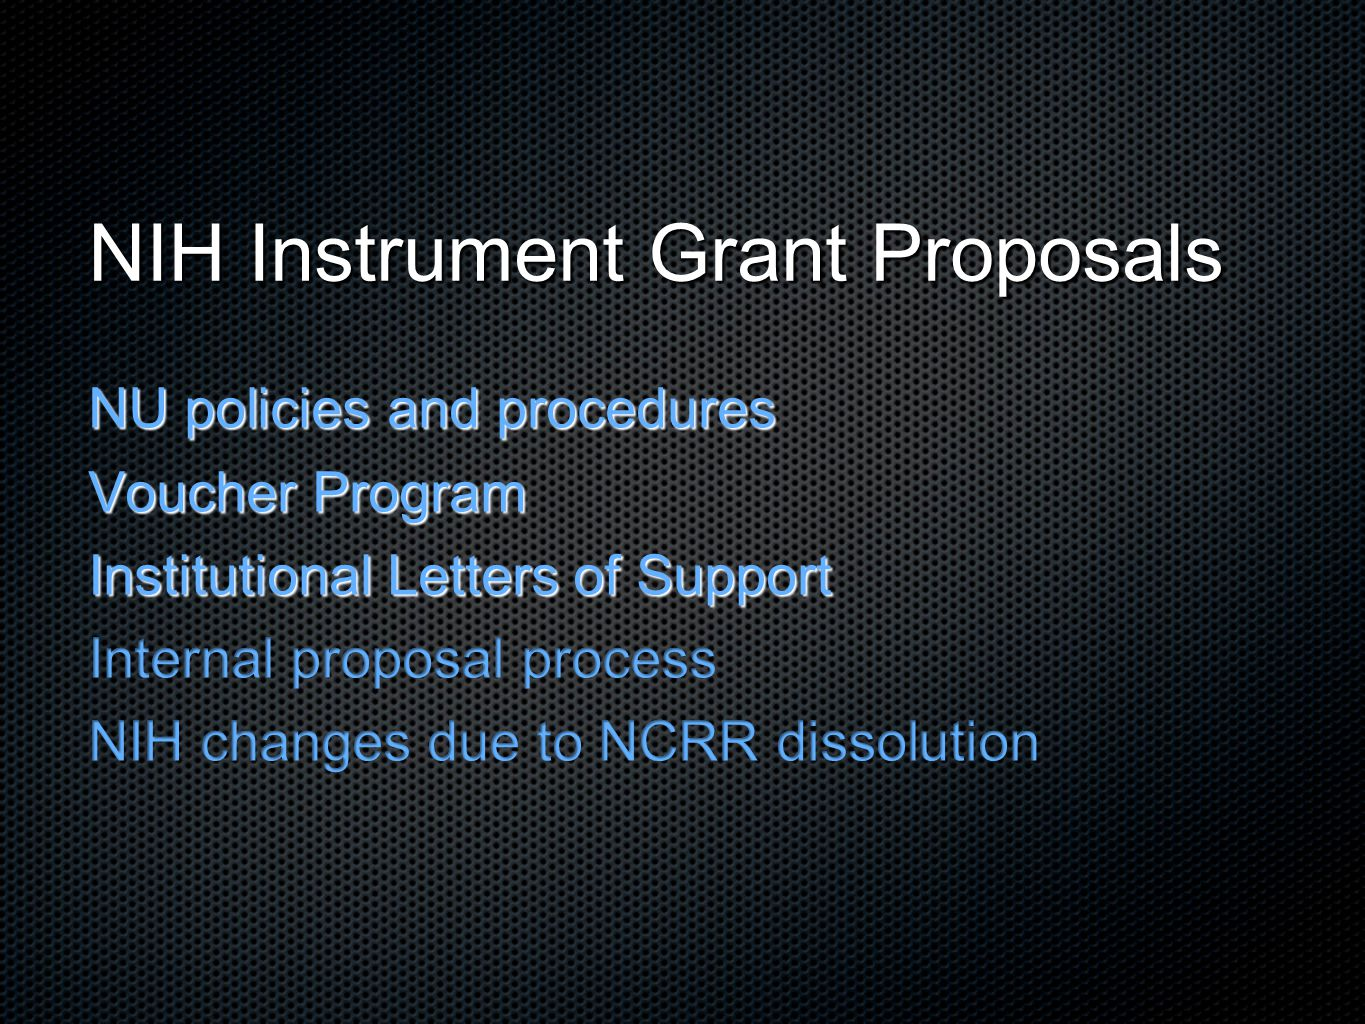 Justification of Needs: Tips Describe the capability of the instrument - highlights its importance; e.g.: replacing a heavily used, aging instrument enhanced capabilities lack of instrumentation at the institution Do not say we need this because others have it Do not shy away from addressing the availability of similar instruments at the institution.